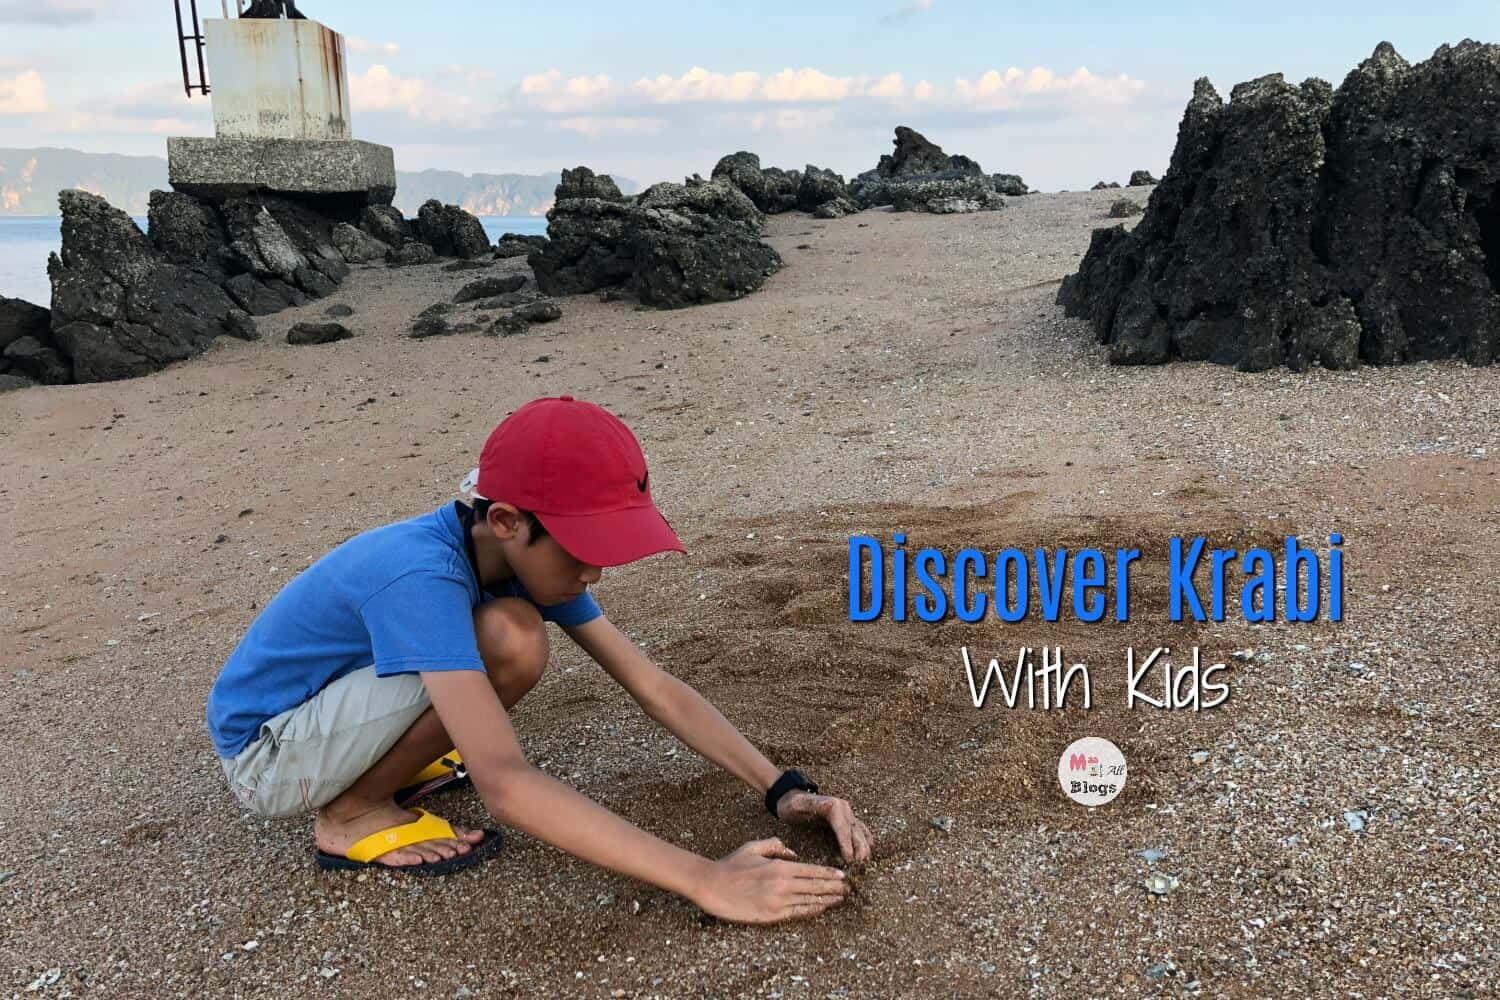 Discover Krabi With Kids